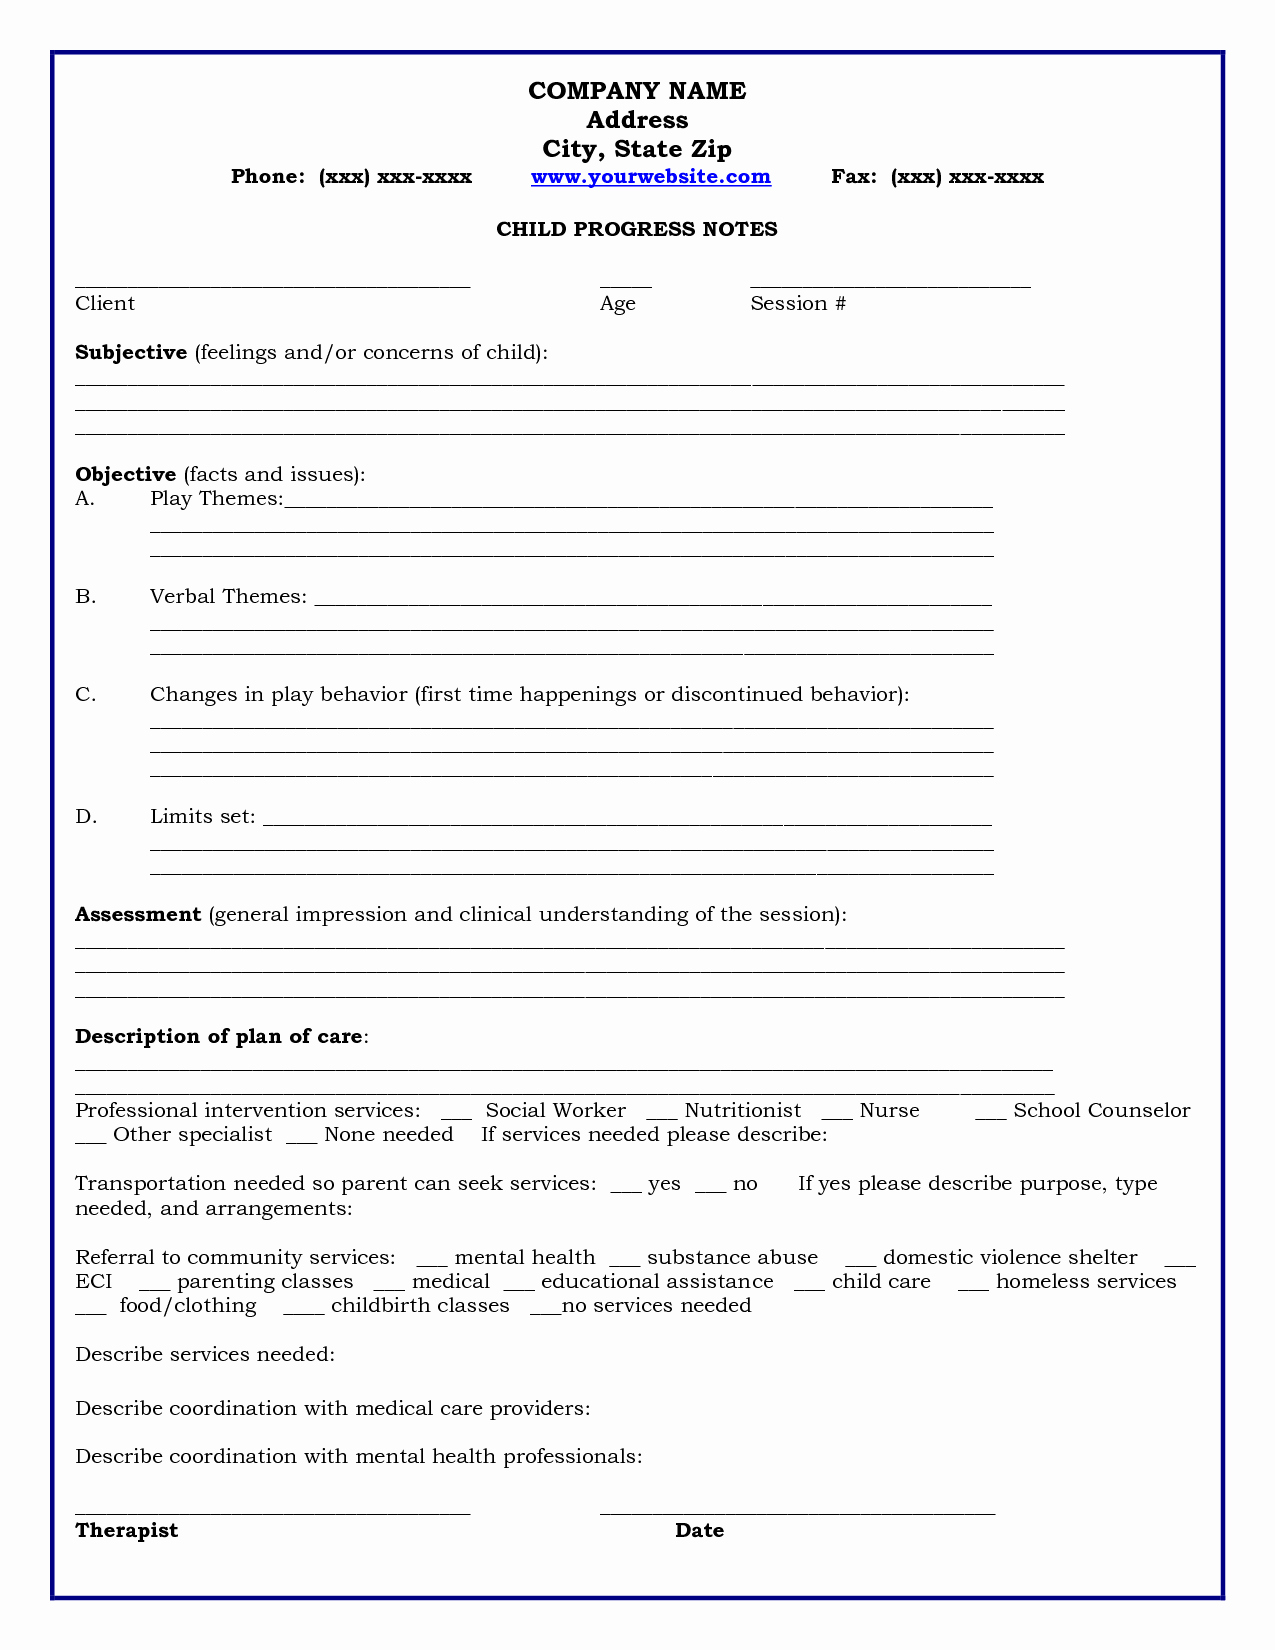 Therapy Progress Note Template Beautiful Home Child Progress Notes Medicaid Child Progress